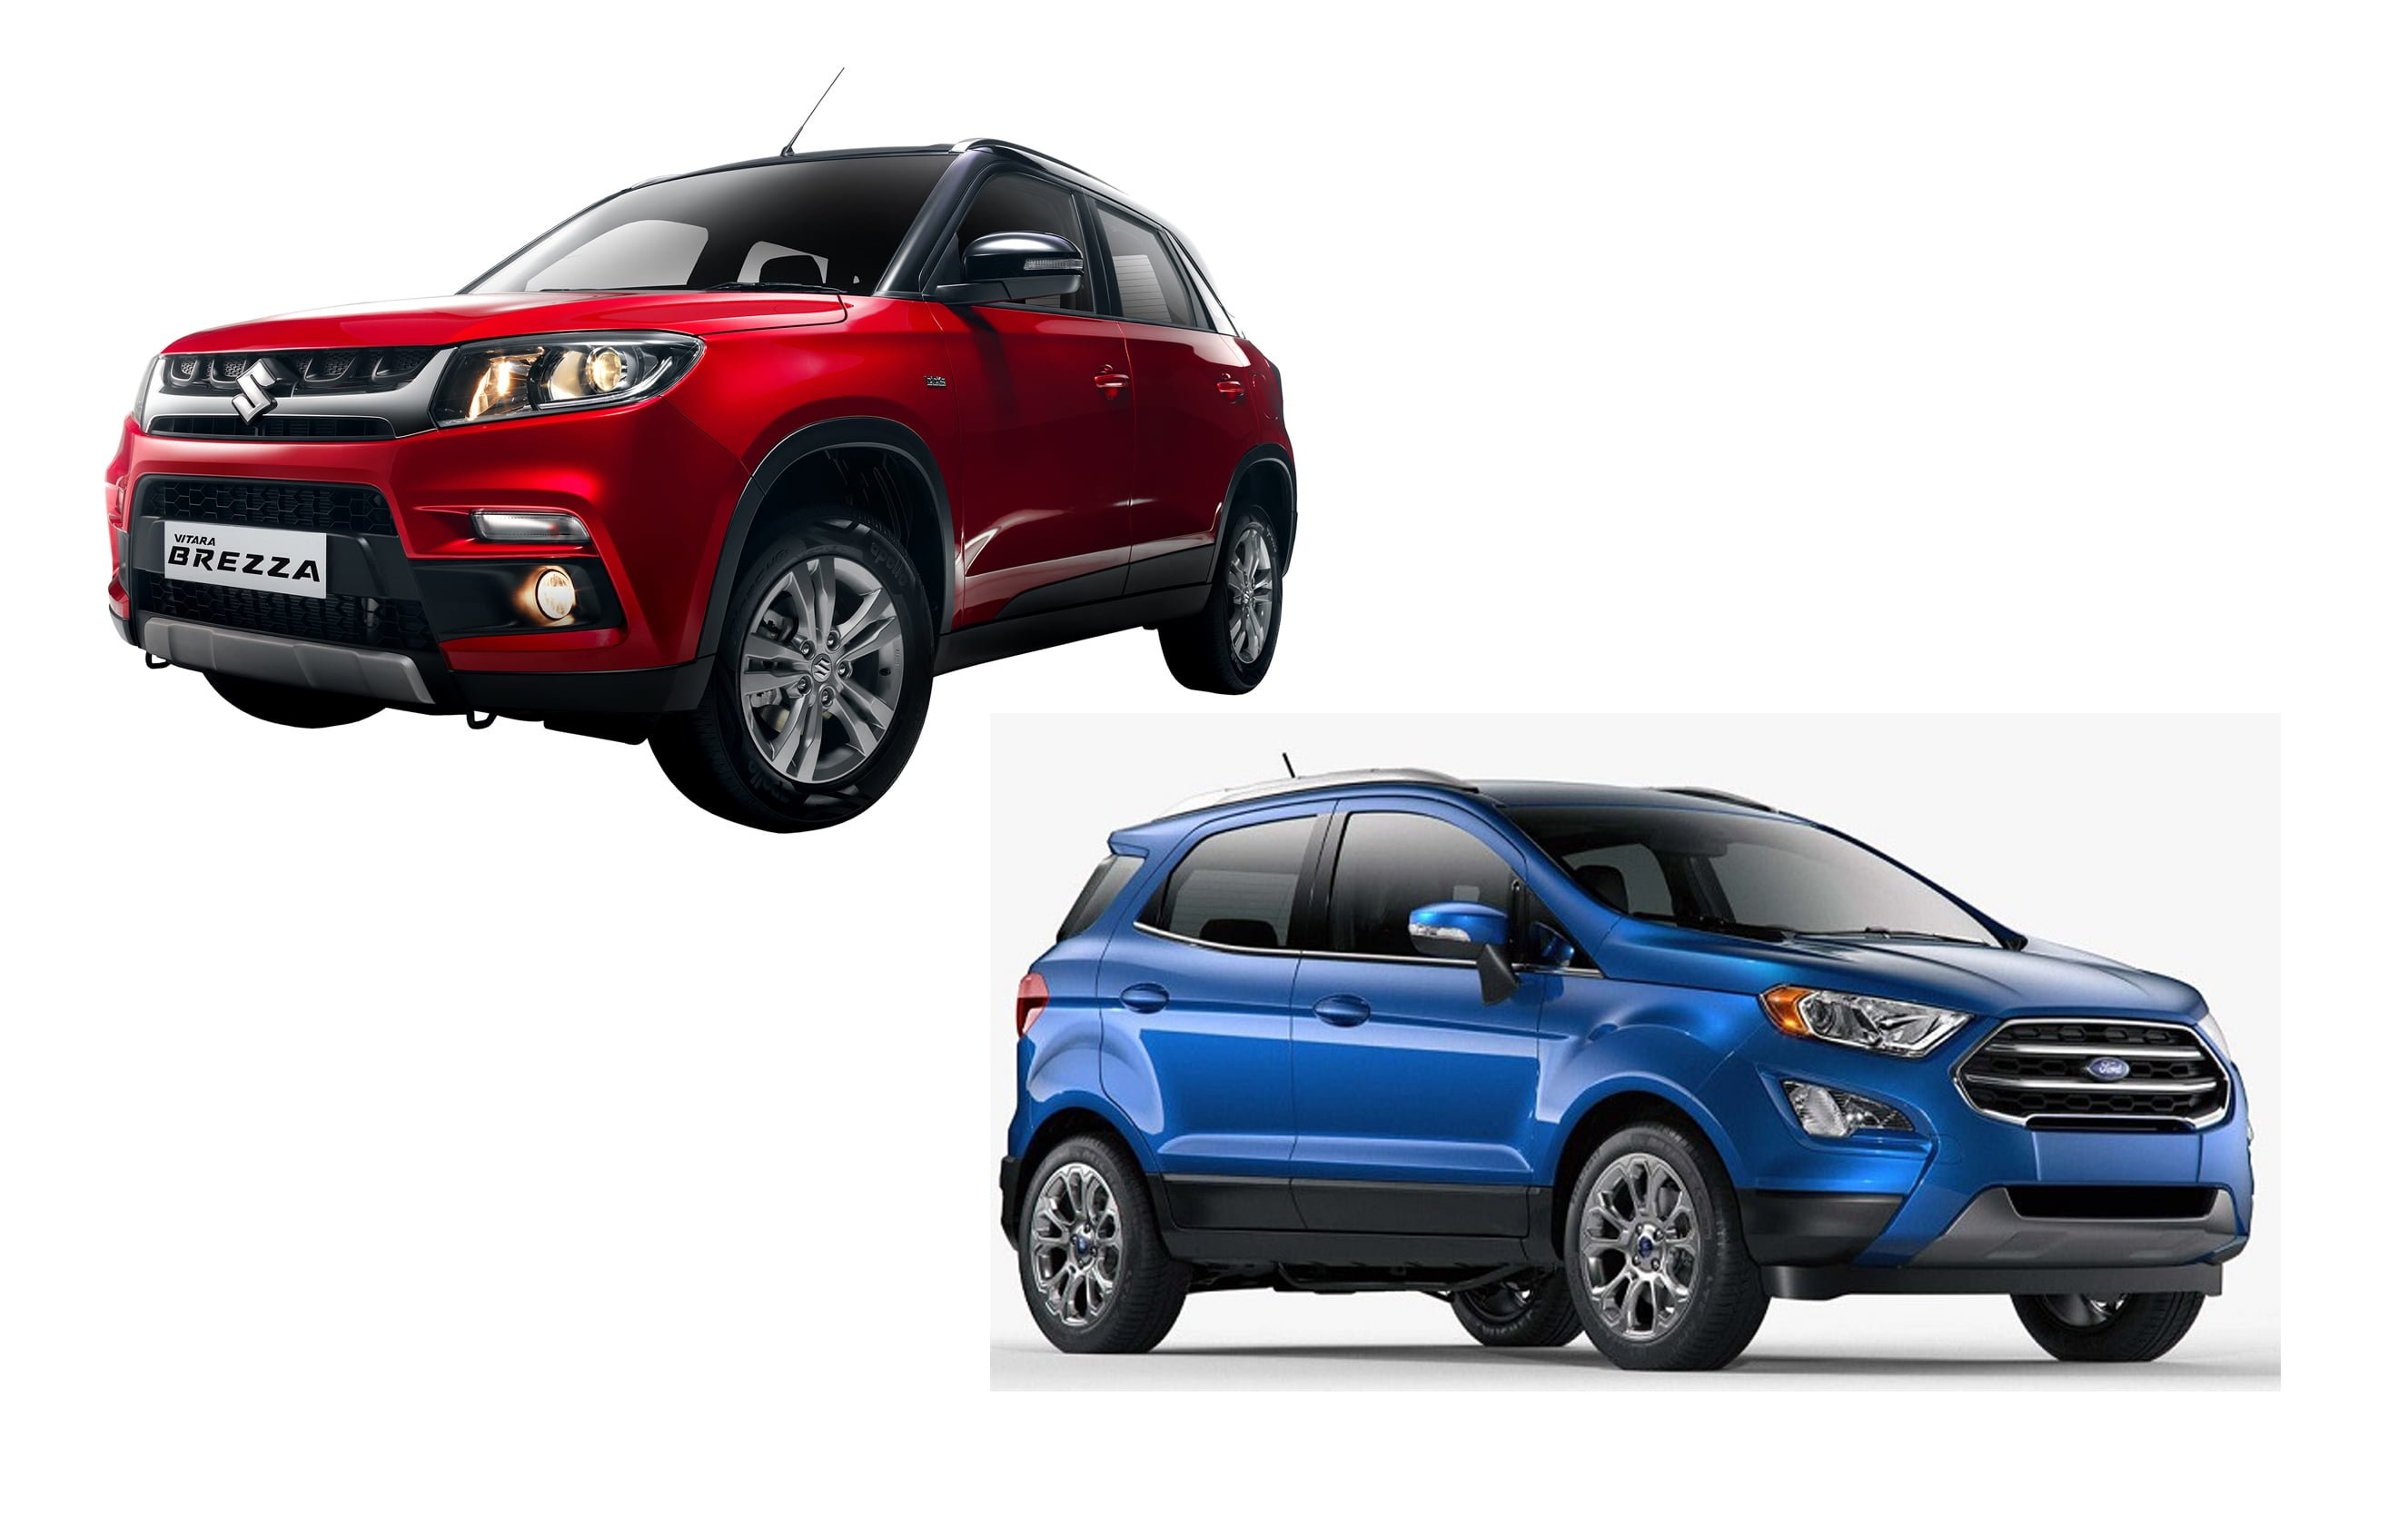 new 2017 ford ecosport vs maruti vitara brezza comparison review. Black Bedroom Furniture Sets. Home Design Ideas